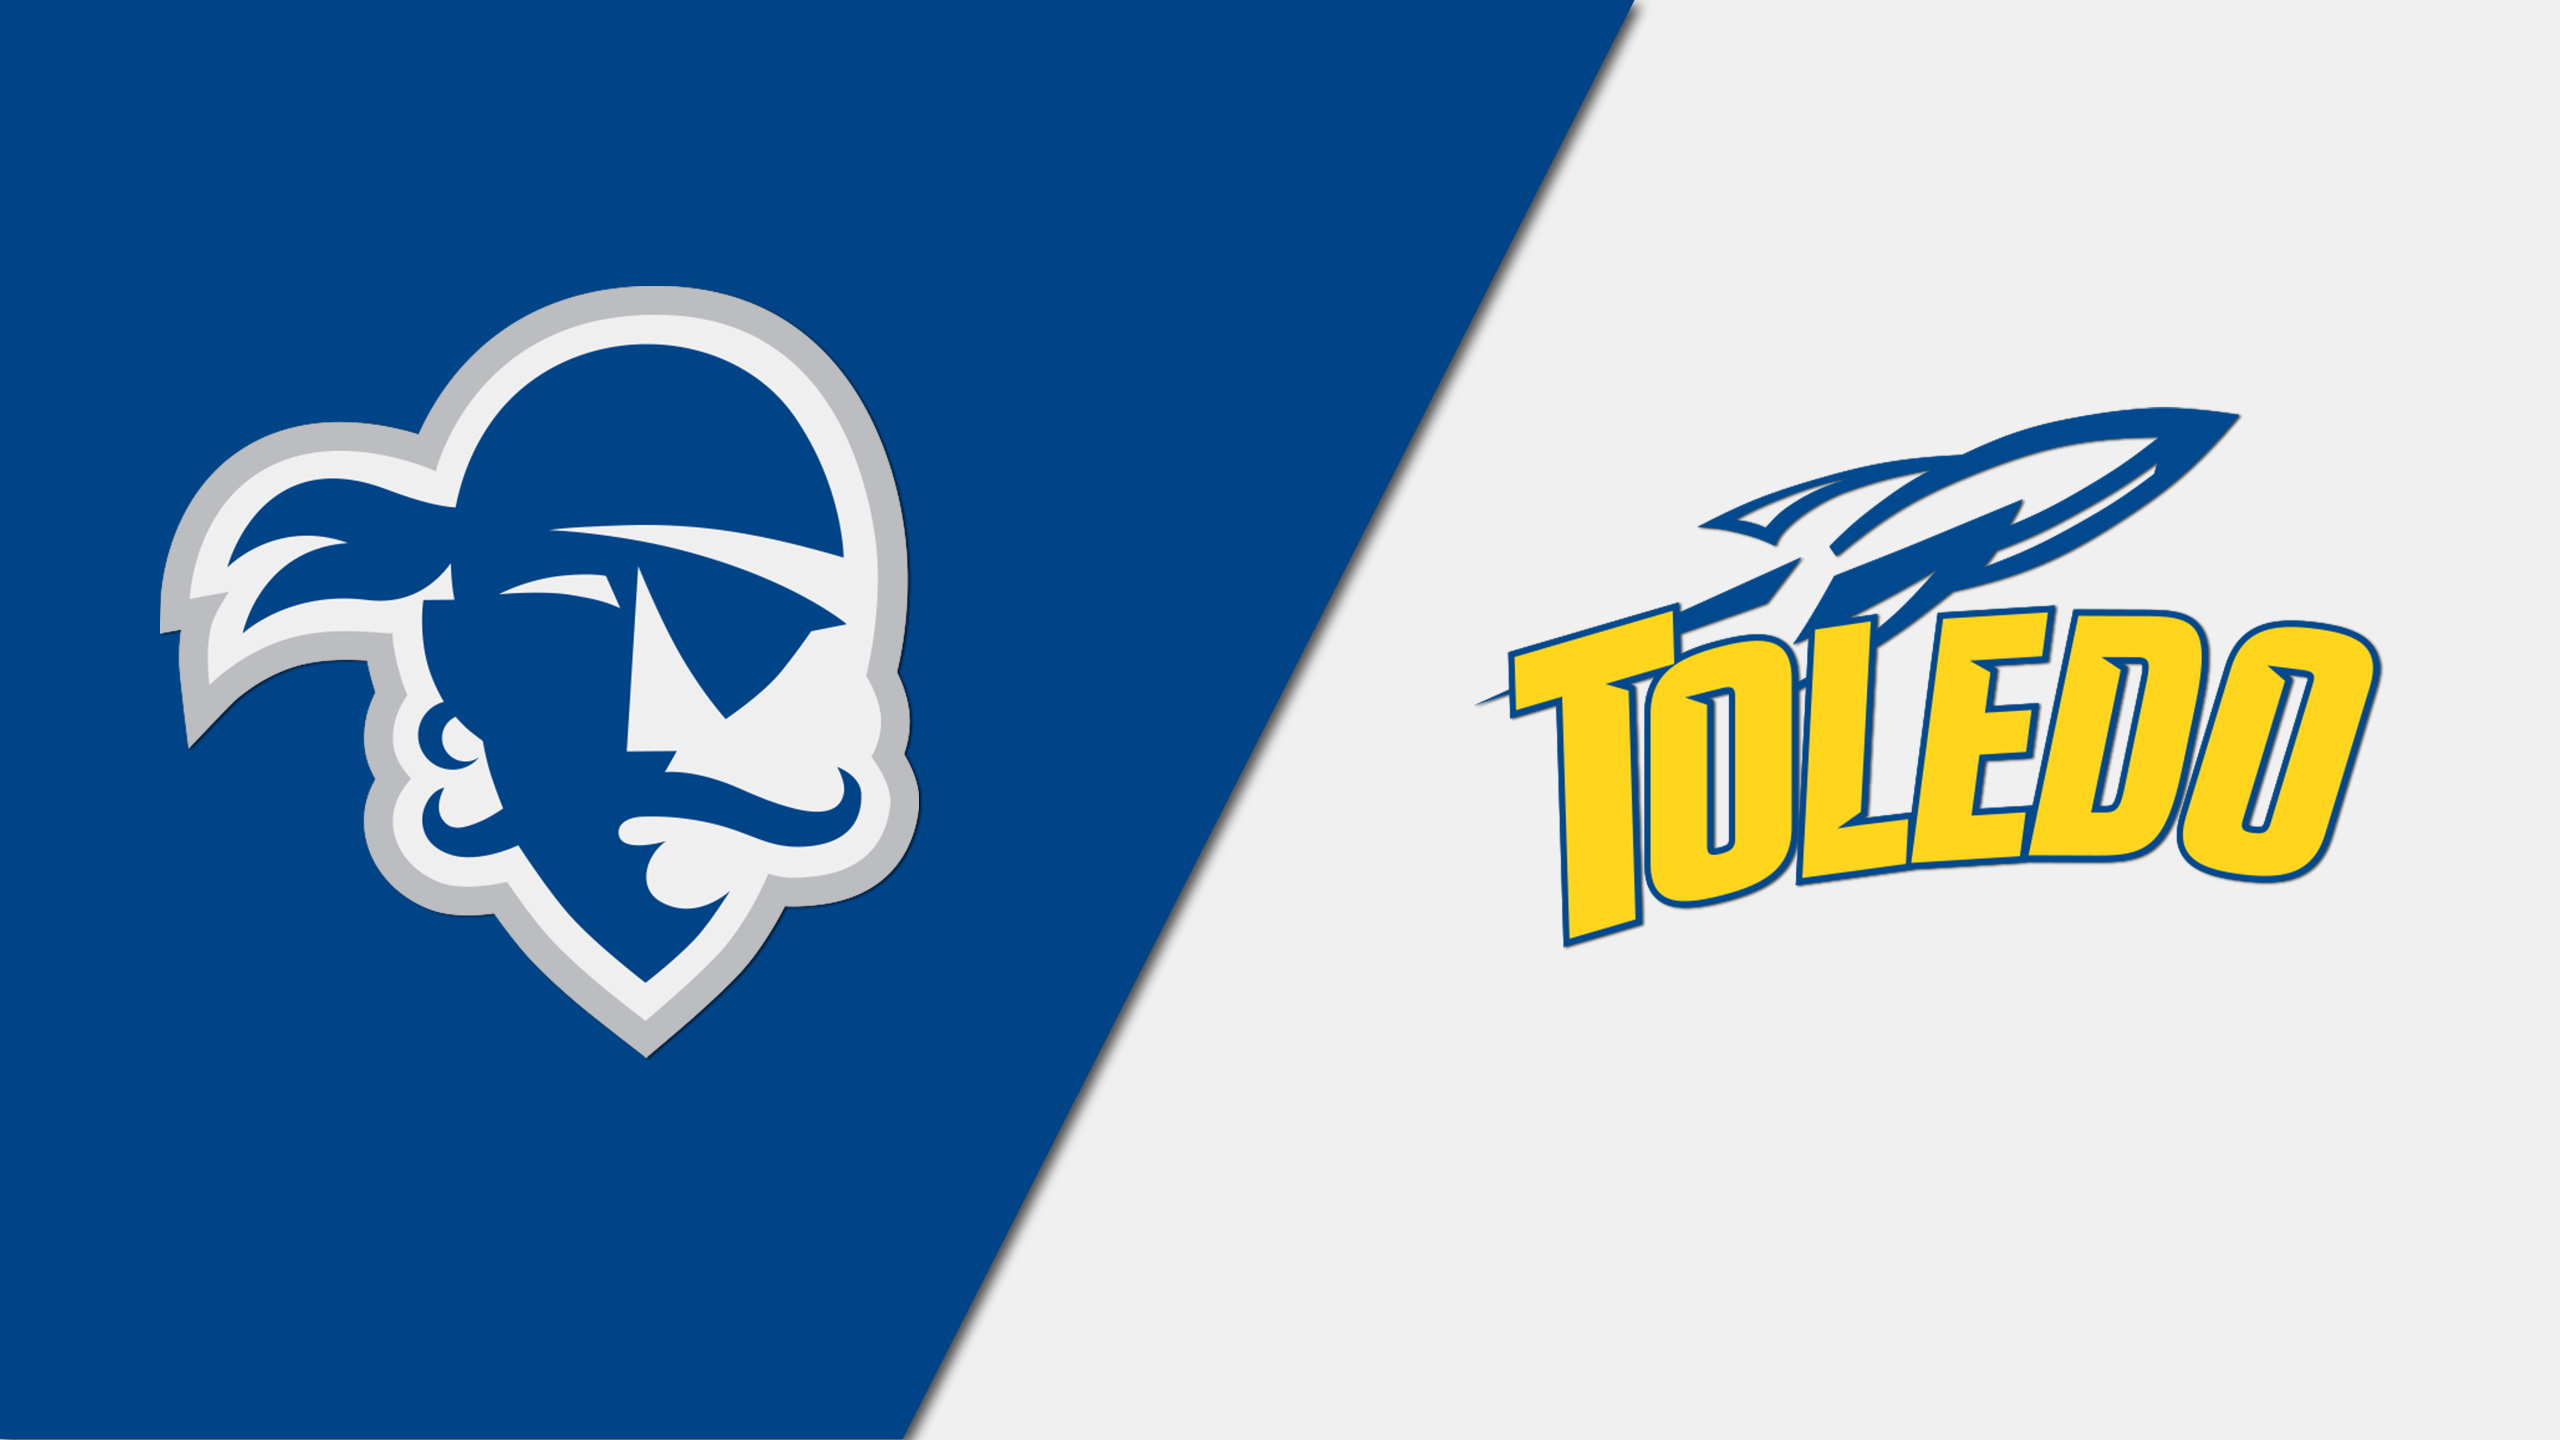 Seton Hall vs. Toledo (Women's NIT)